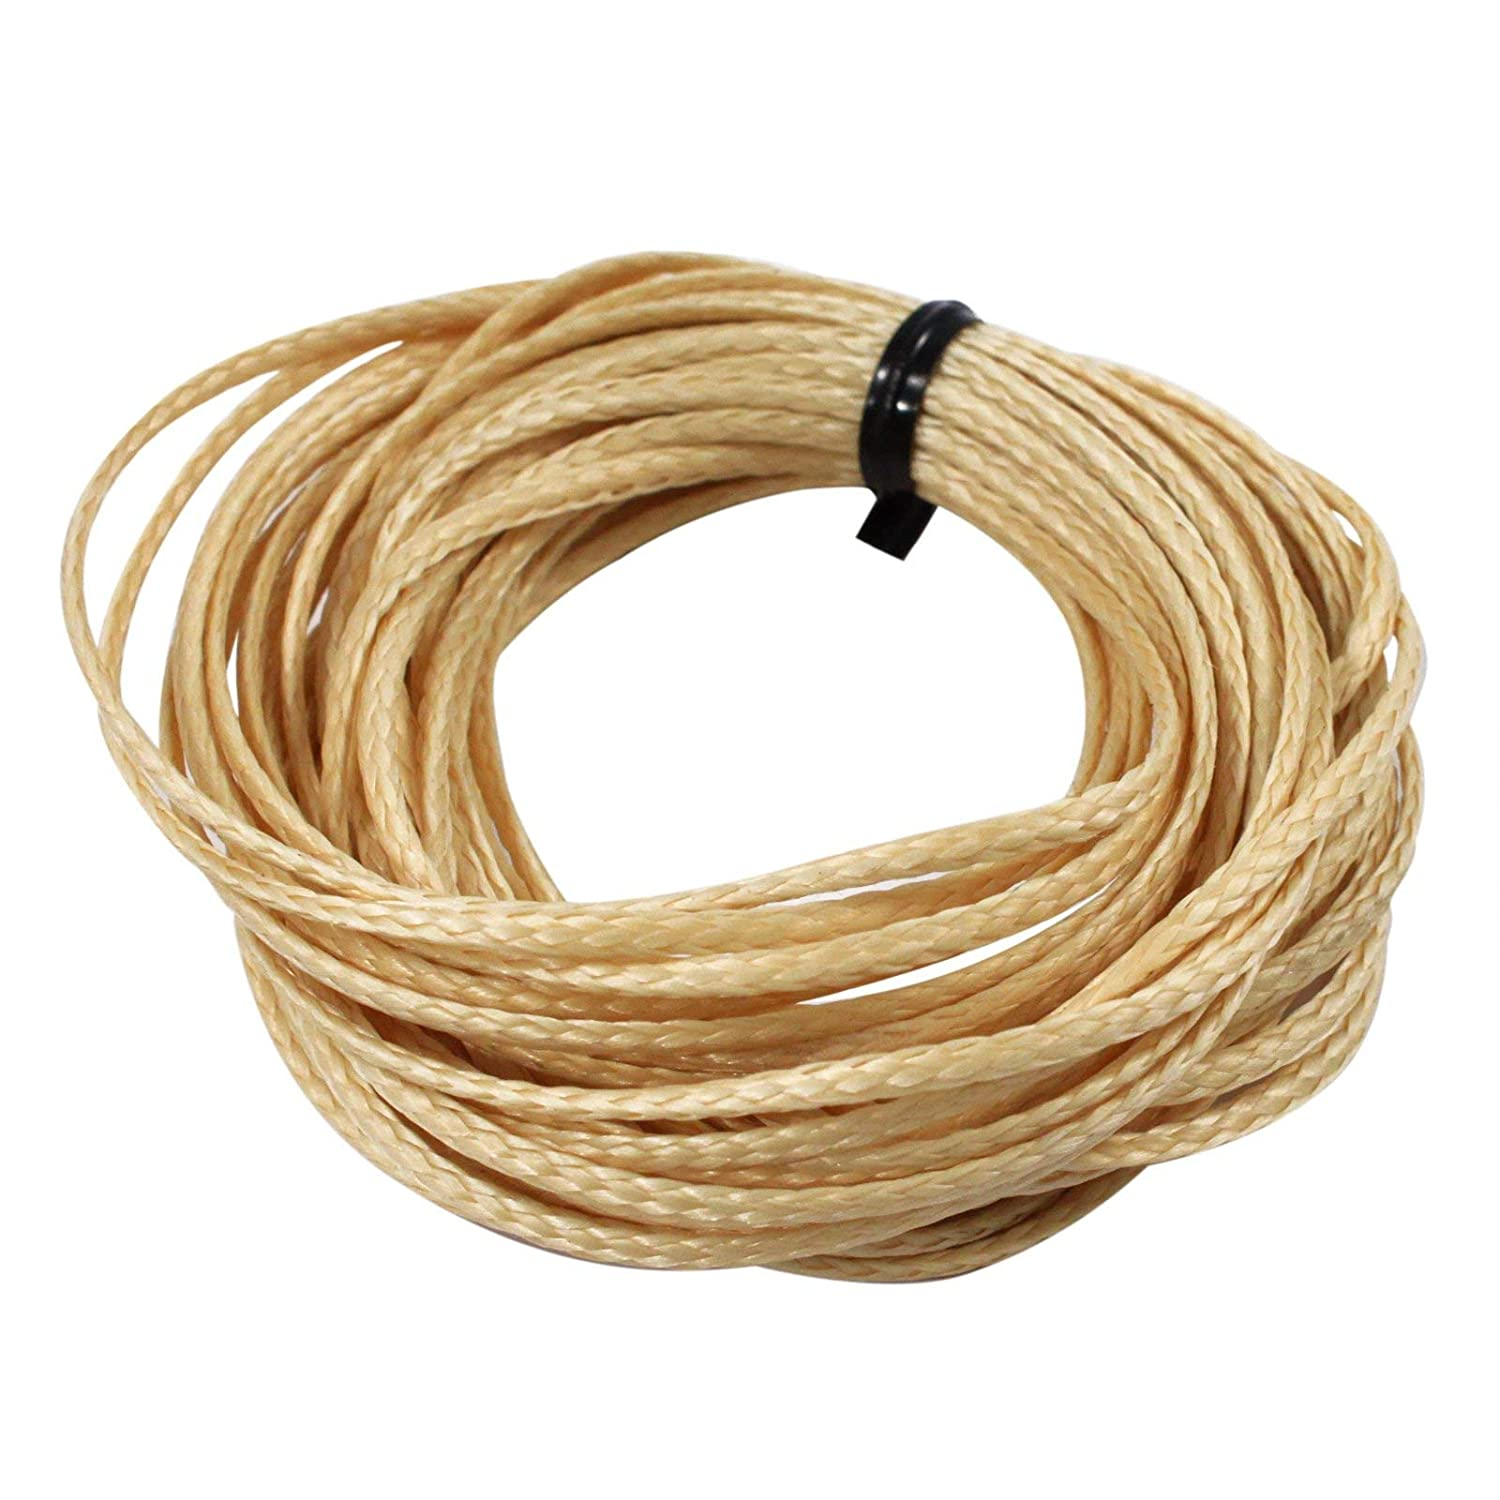 ASR Tactical Natural Braided Vectran Cord 600lb Breaking Strength 100ft